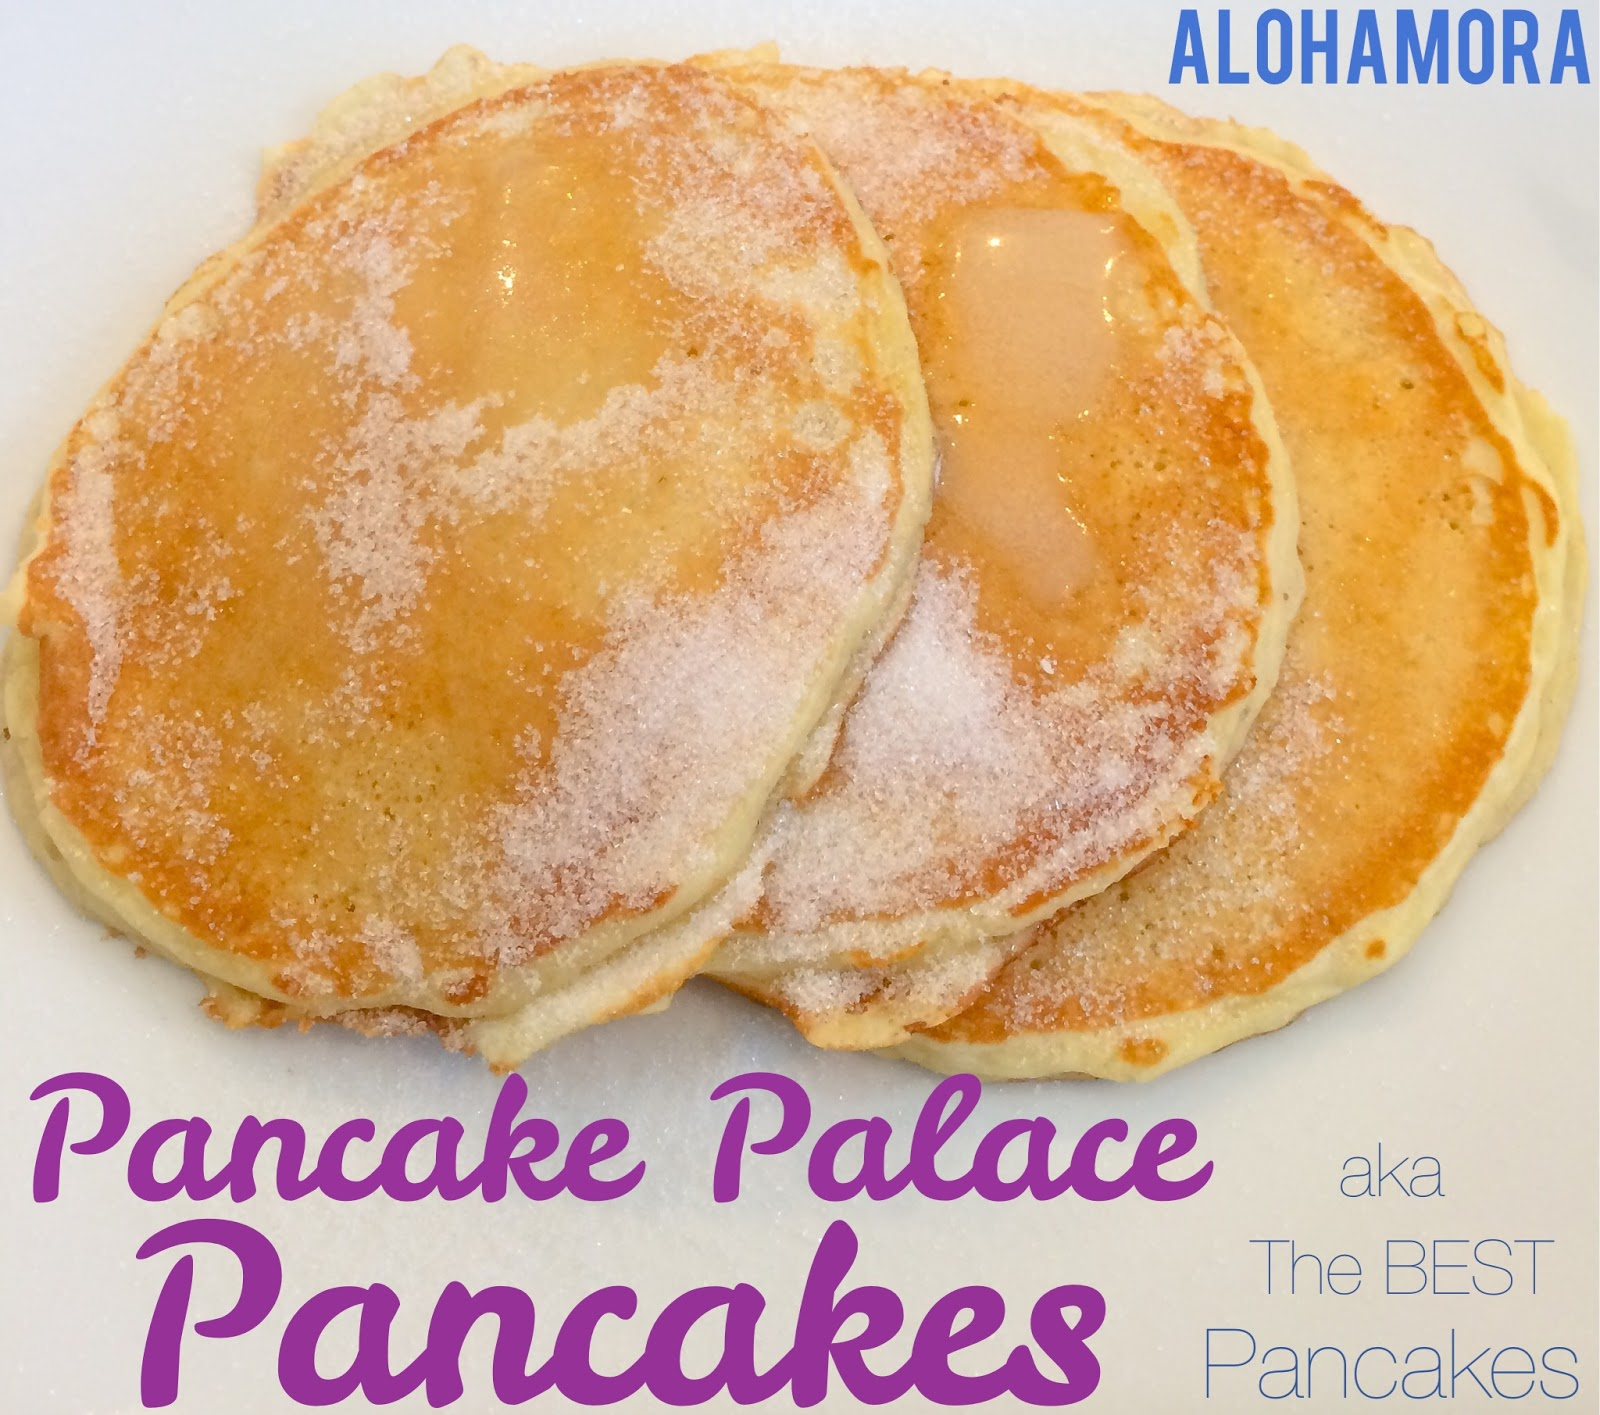 The BEST pancakes inspired from the Pancake Palace.  A copycat recipe.  Light and fluffy pancakes that you won't be able to stop eating.  Homemade from scratch pancakes that are fast and easy to make; they are just as fast as box pancakes.  Alohamora Open a Book http://alohamoraopenabook.blogspot.com/